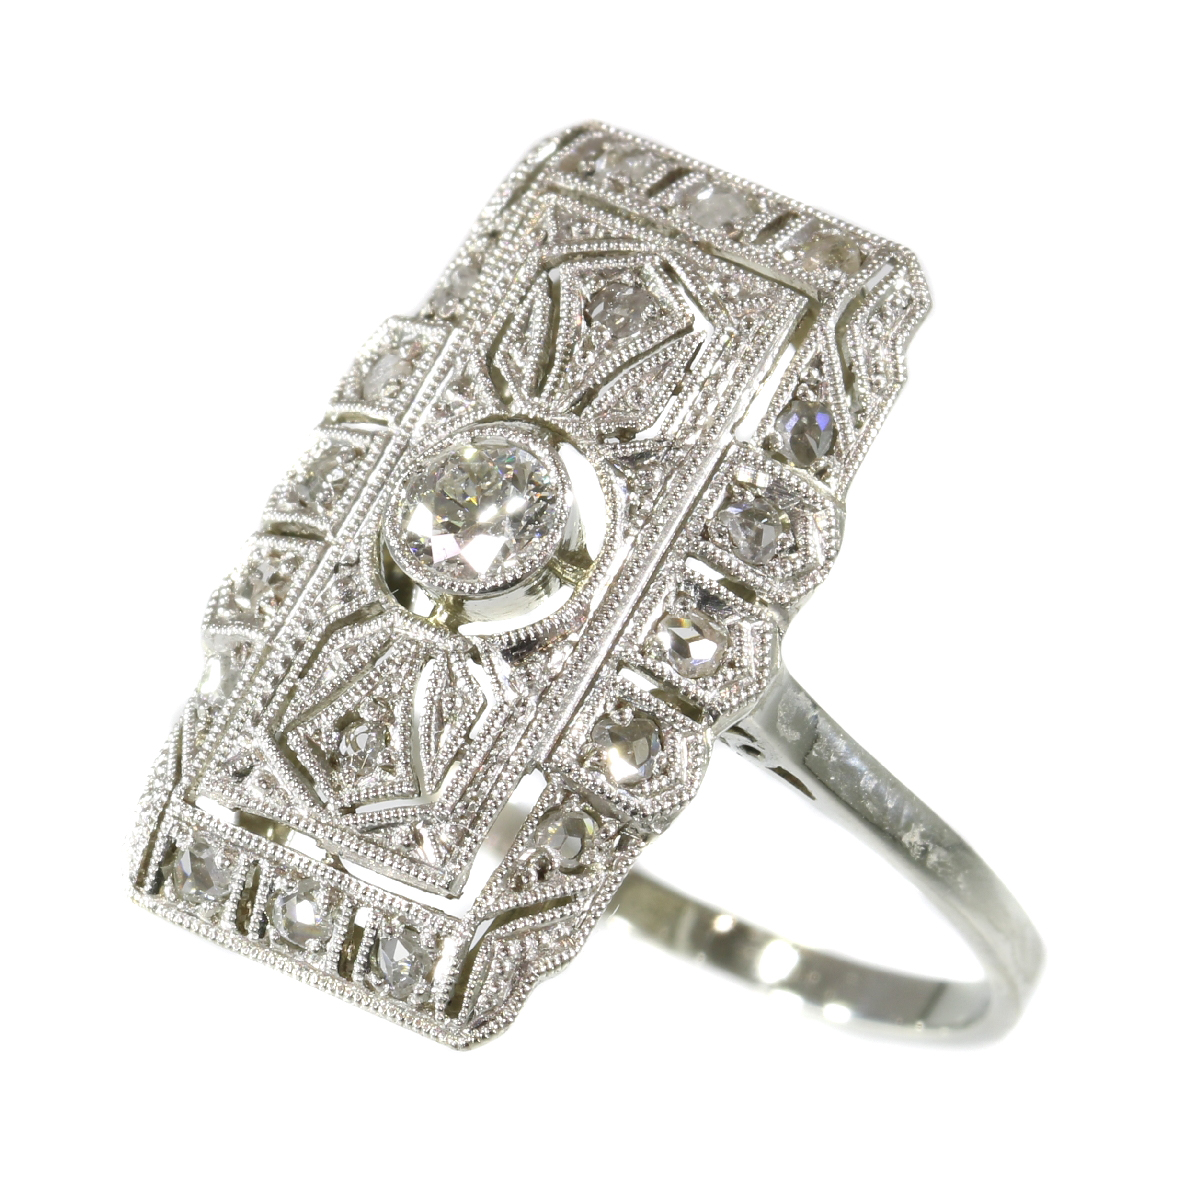 Classy Edwardian Art Deco diamond engagement ring